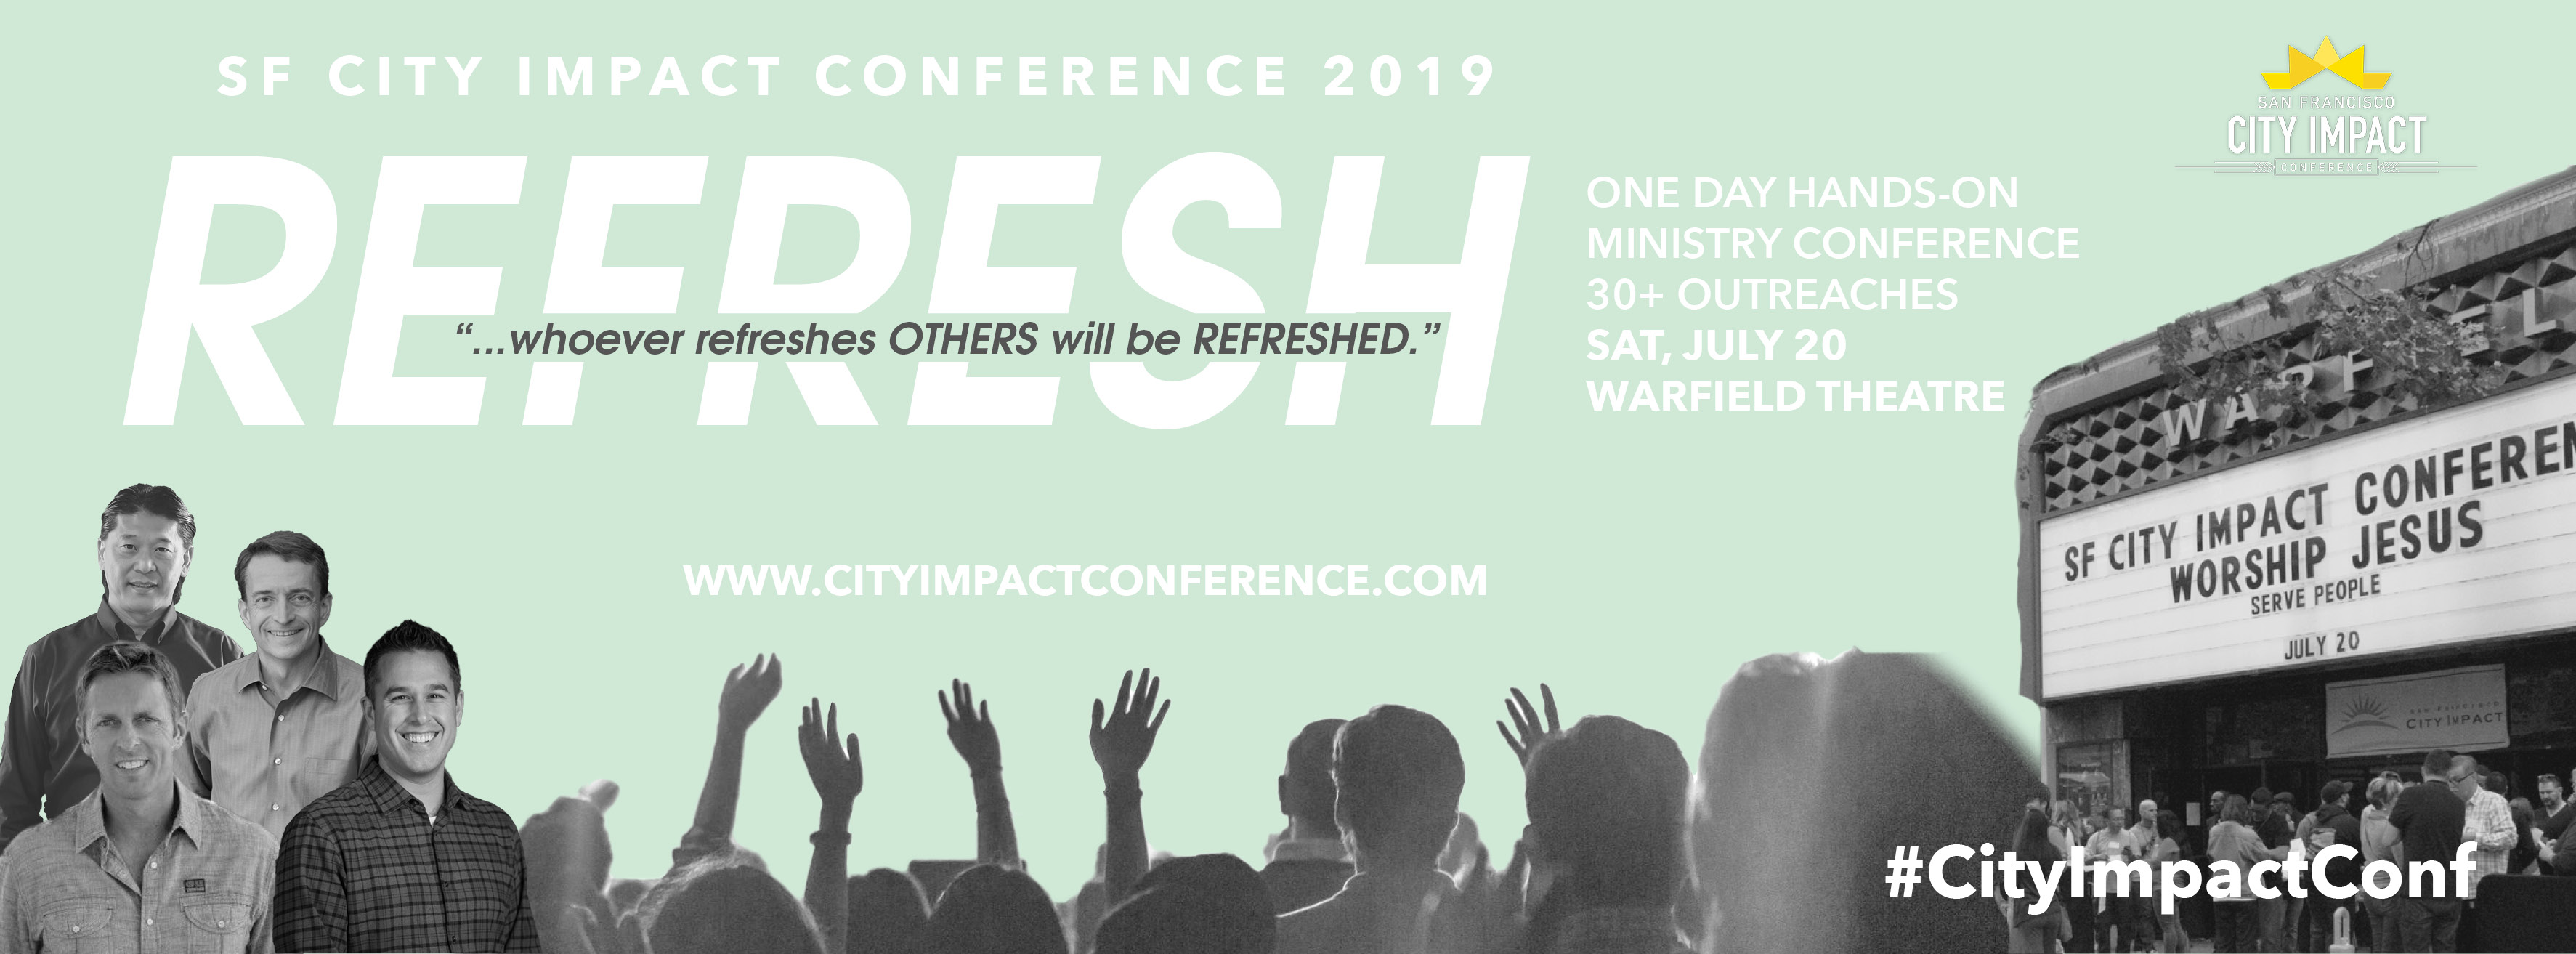 SF CITY IMPACT CONFERENCE 2019